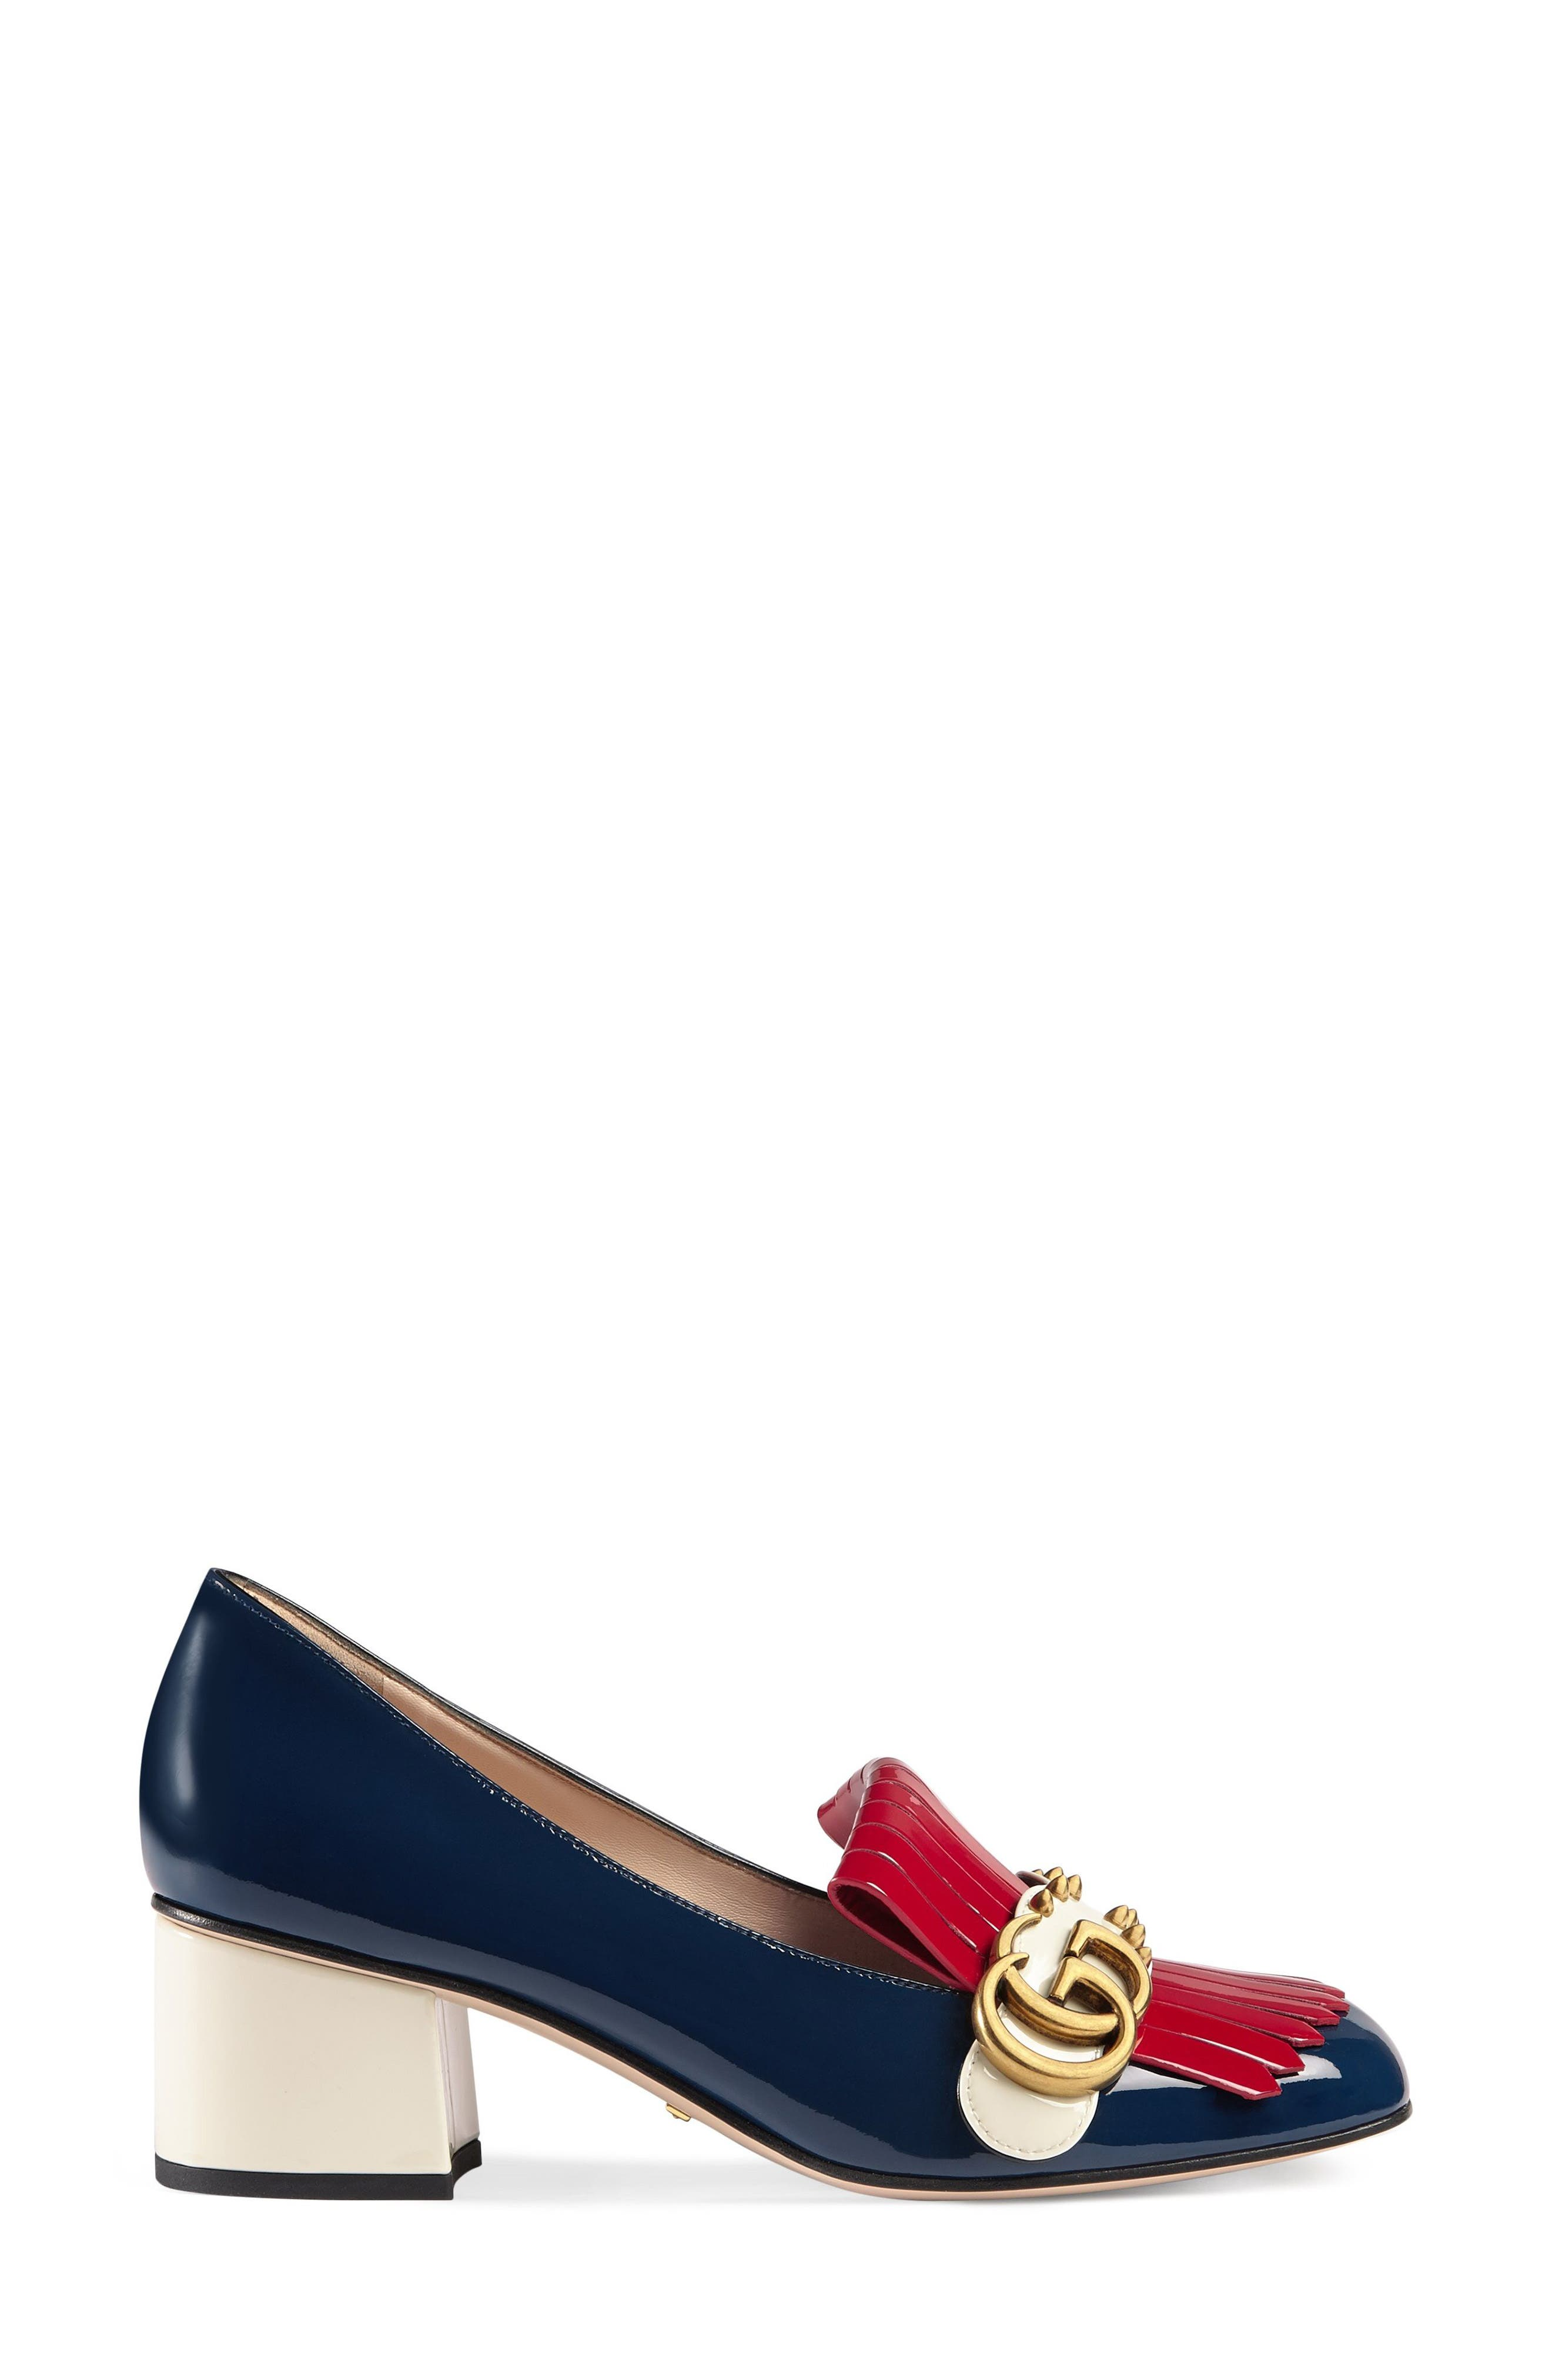 Marmont Pump,                             Main thumbnail 1, color,                             Navy/ Red/ White